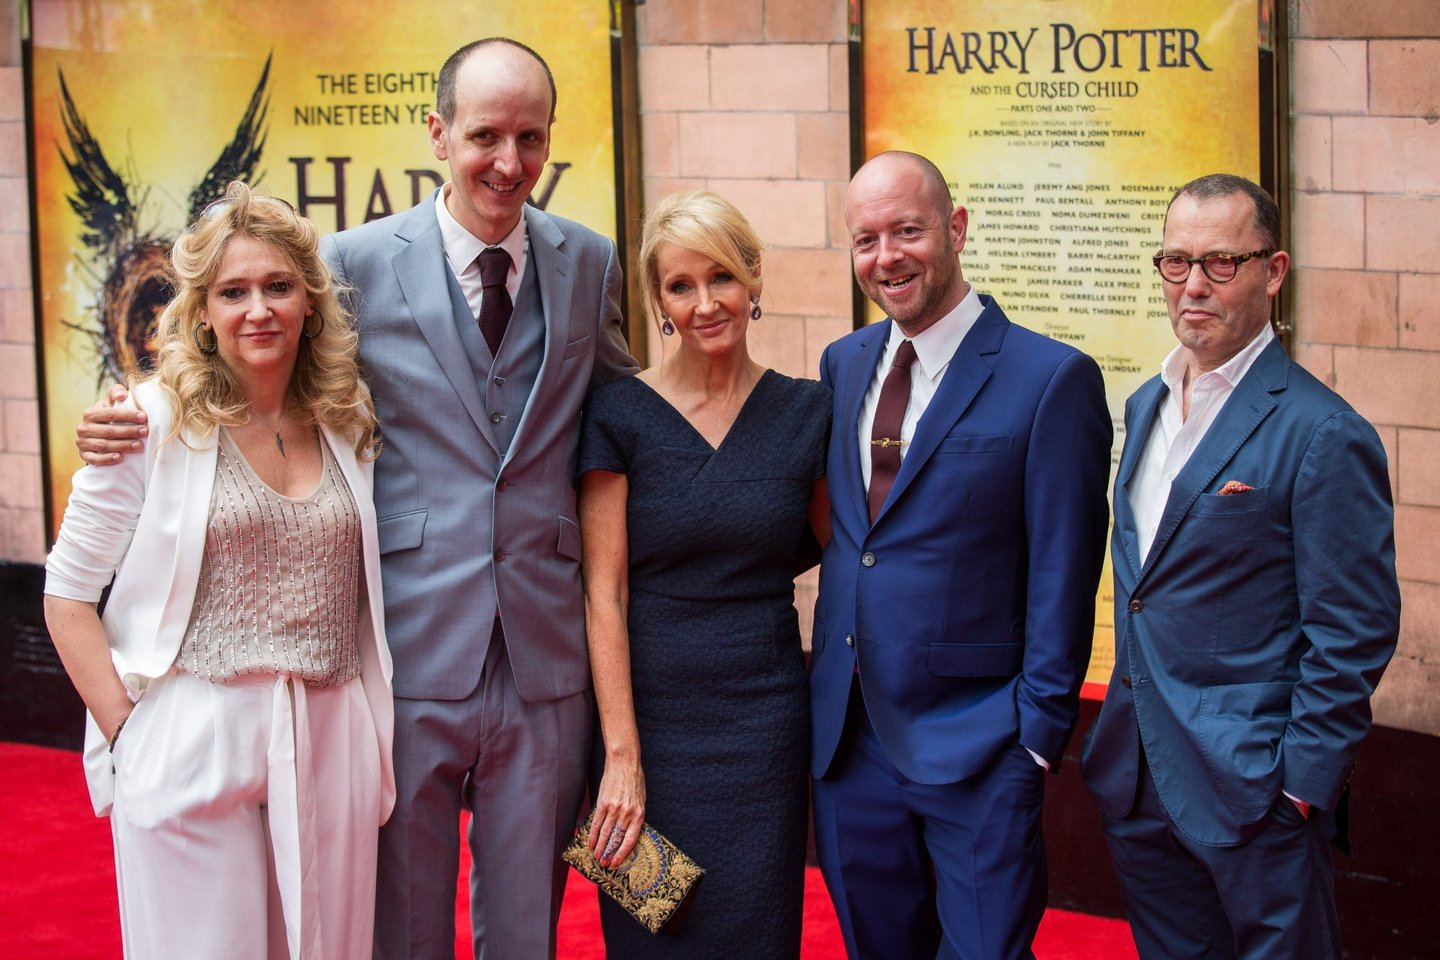 "LONDON, ENGLAND - JULY 30: Sonia Friedman, Jack Thorne, J. K. Rowling, John Tiffany and Colin Callender attend the press preview of ""Harry Potter & The Cursed Child"" at Palace Theatre on July 30, 2016 in London, England. Harry Potter and the Cursed Child, a two-part West End stage play written by Jack Thorne based on an original new story by Thorne, J.K. Rowling and John Tiffany. (Photo by Rob Stothard/Getty Images)"